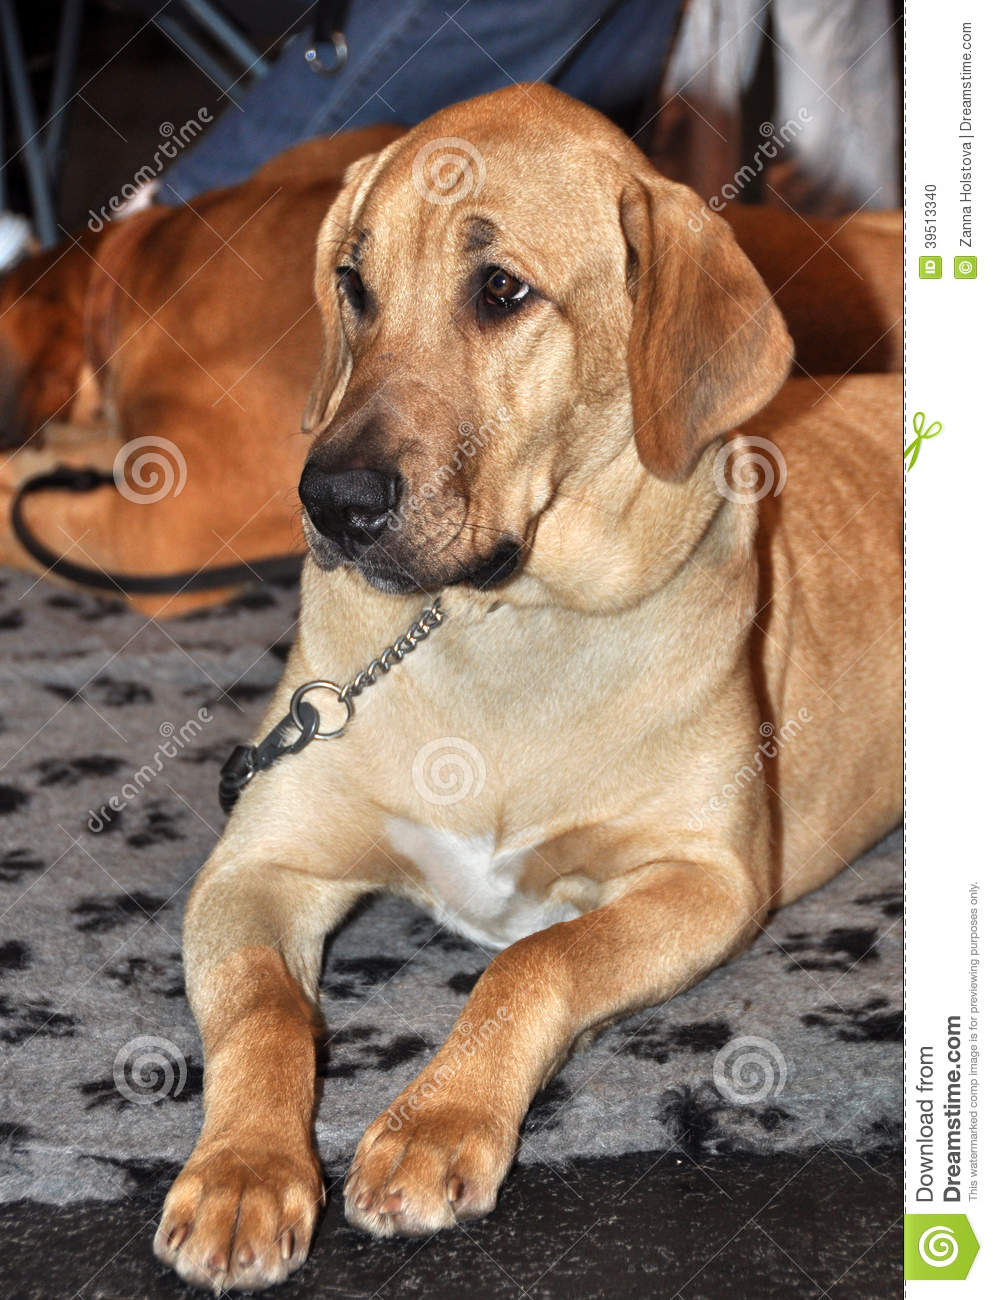 Broholmer, also called the Danish Mastiff, is a large molosser breed ...